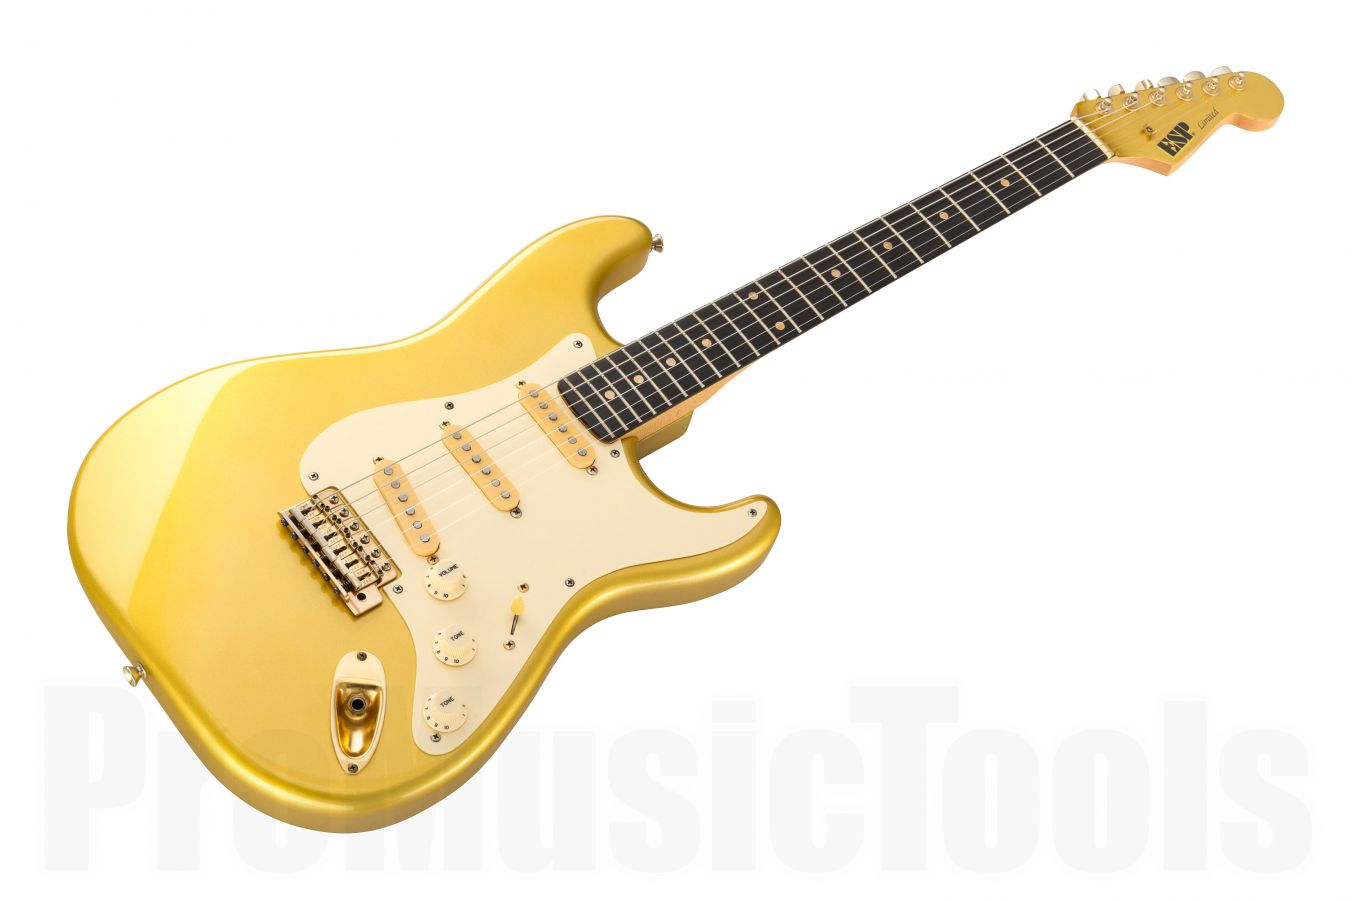 ESP Limited Edition Custom Shop Strat - Shoreline Gold